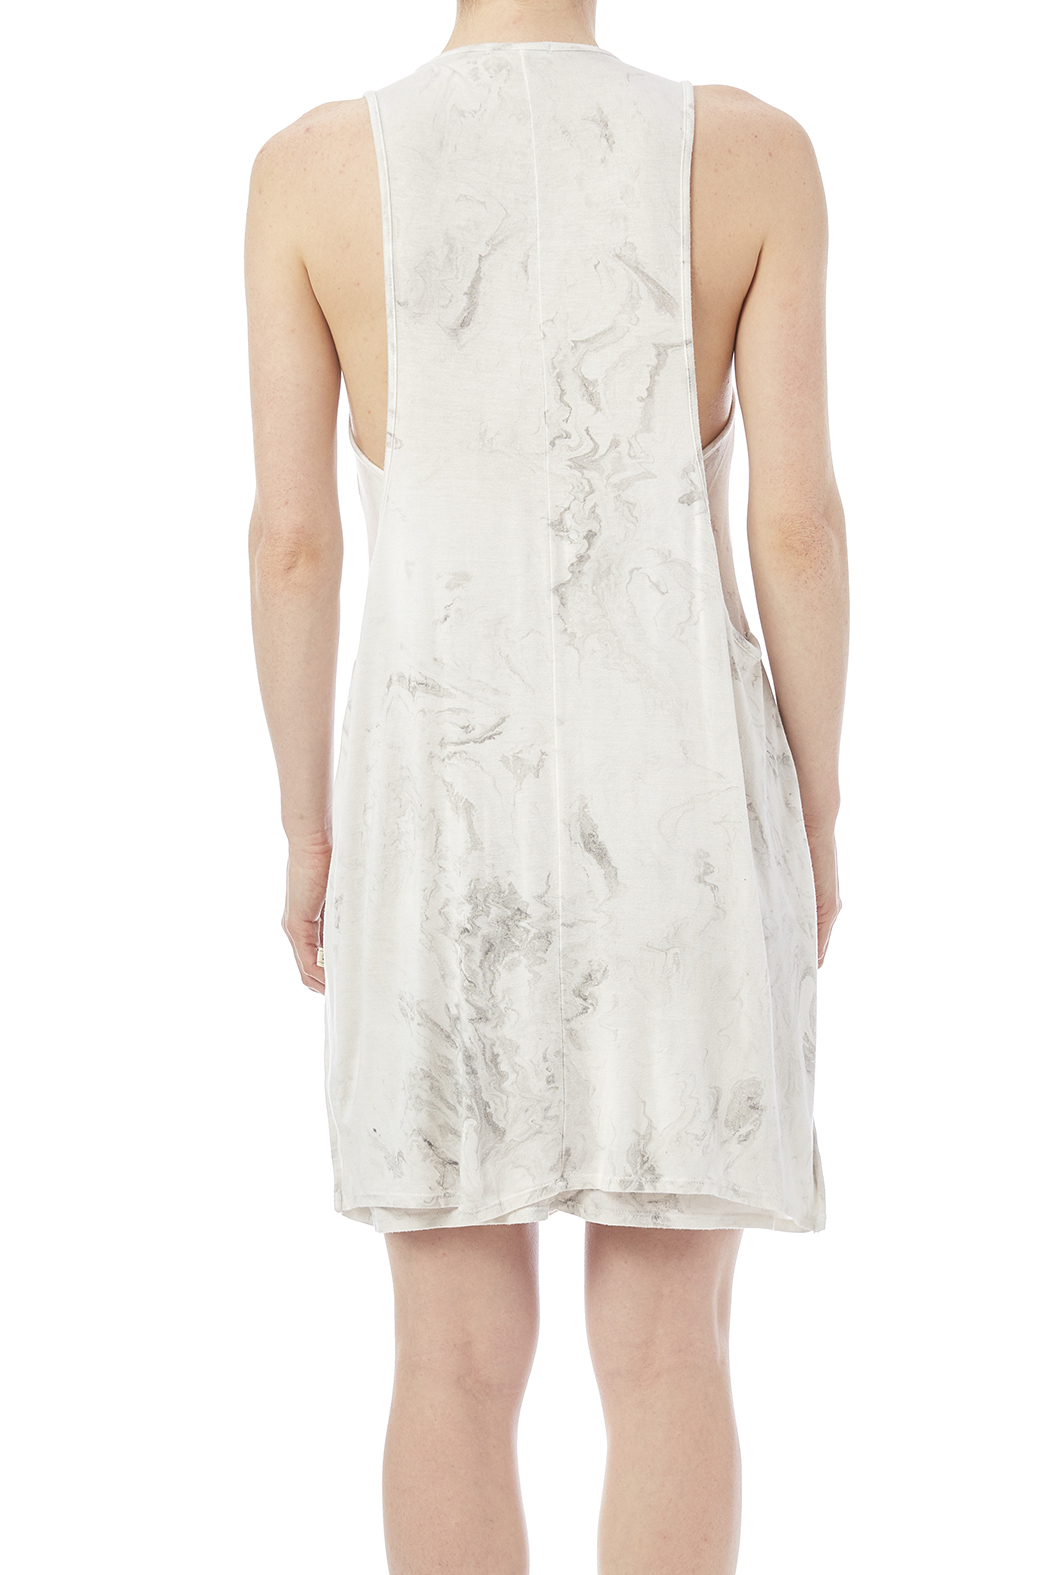 NYTT Marbled Tank Dress - Back Cropped Image